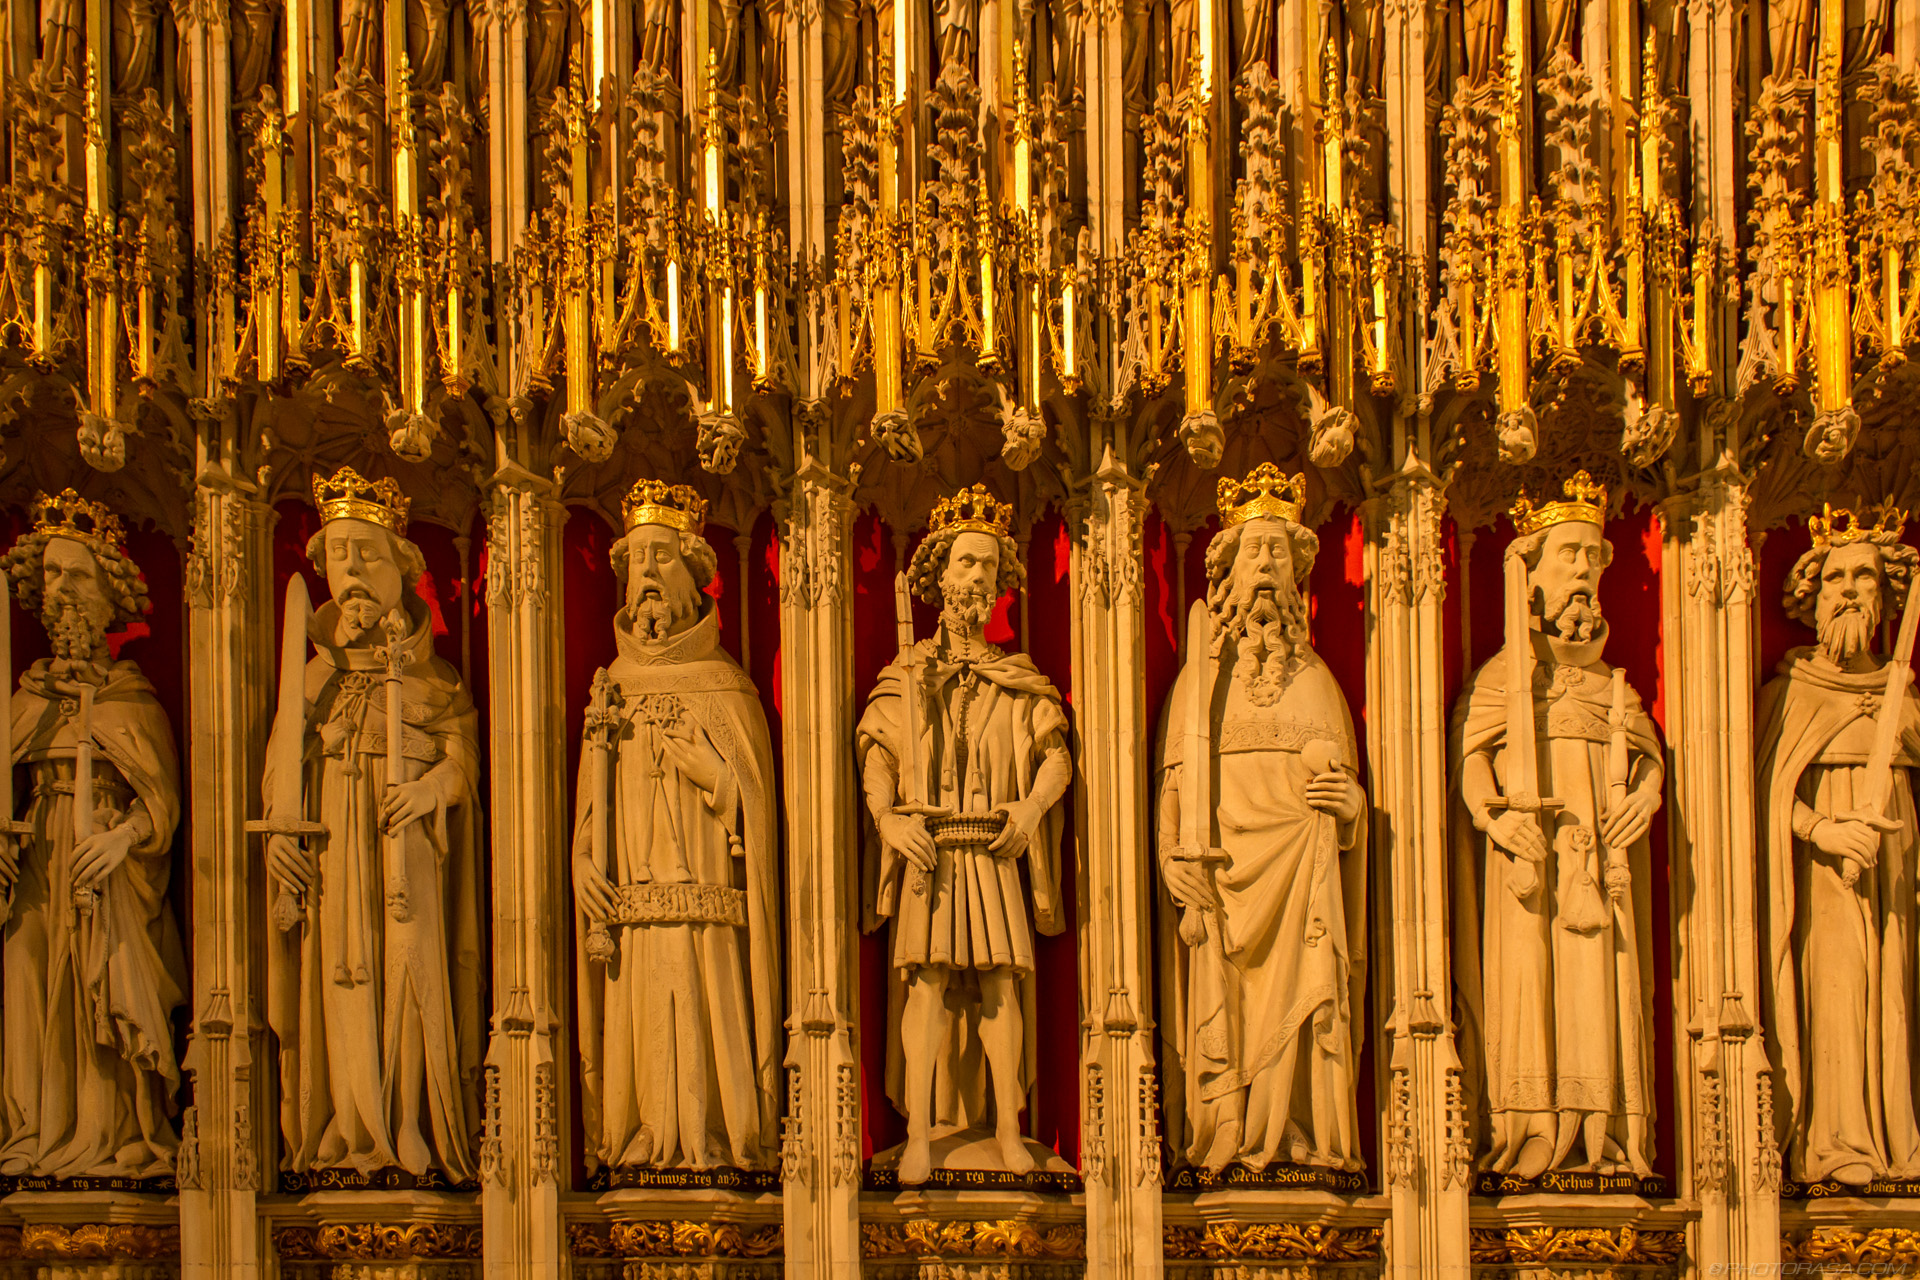 http://photorasa.com/yorkminster-cathedral/kings-screen-decorative-stone-figures/